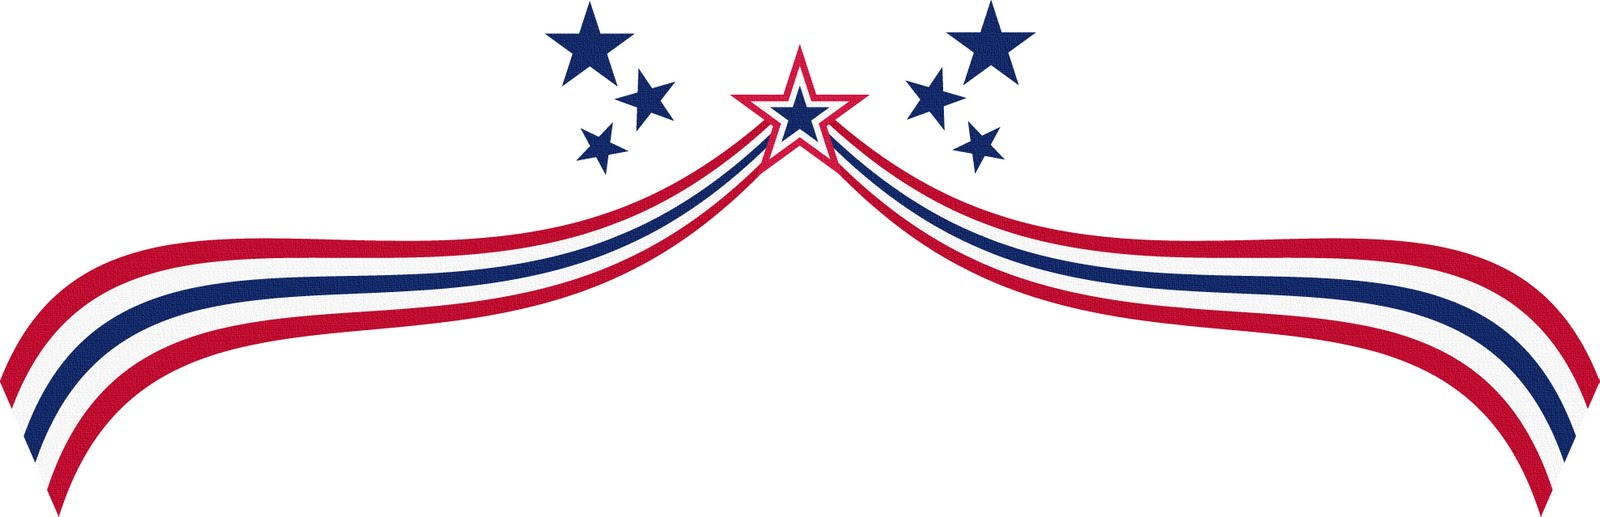 hight resolution of 4th of july fourth of july clip art religious free clipart 4